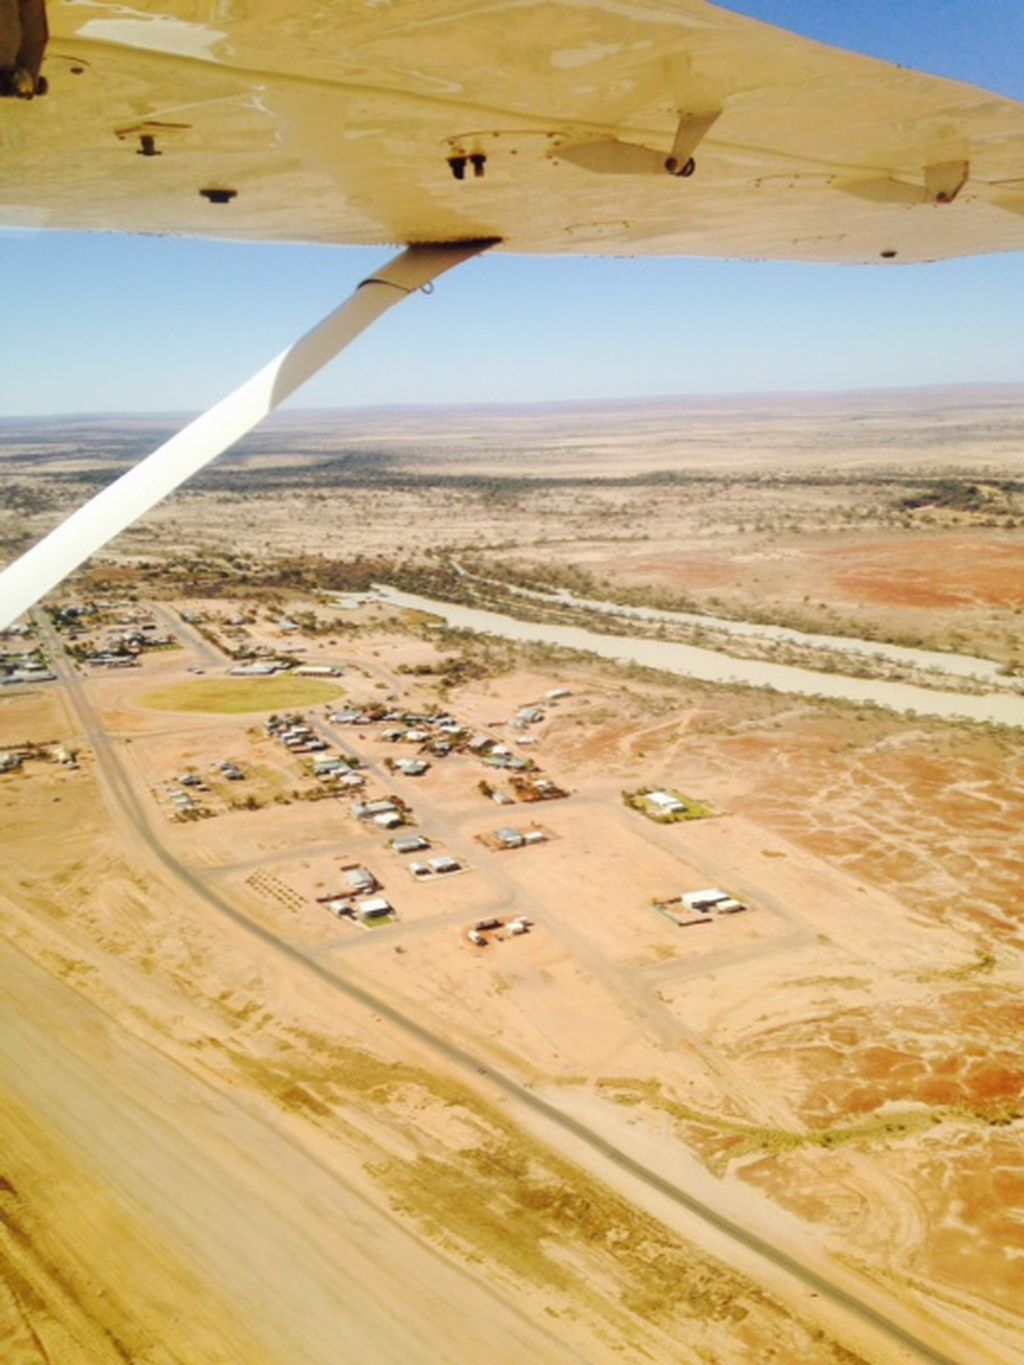 Wrightsair Flights from Birdsville!